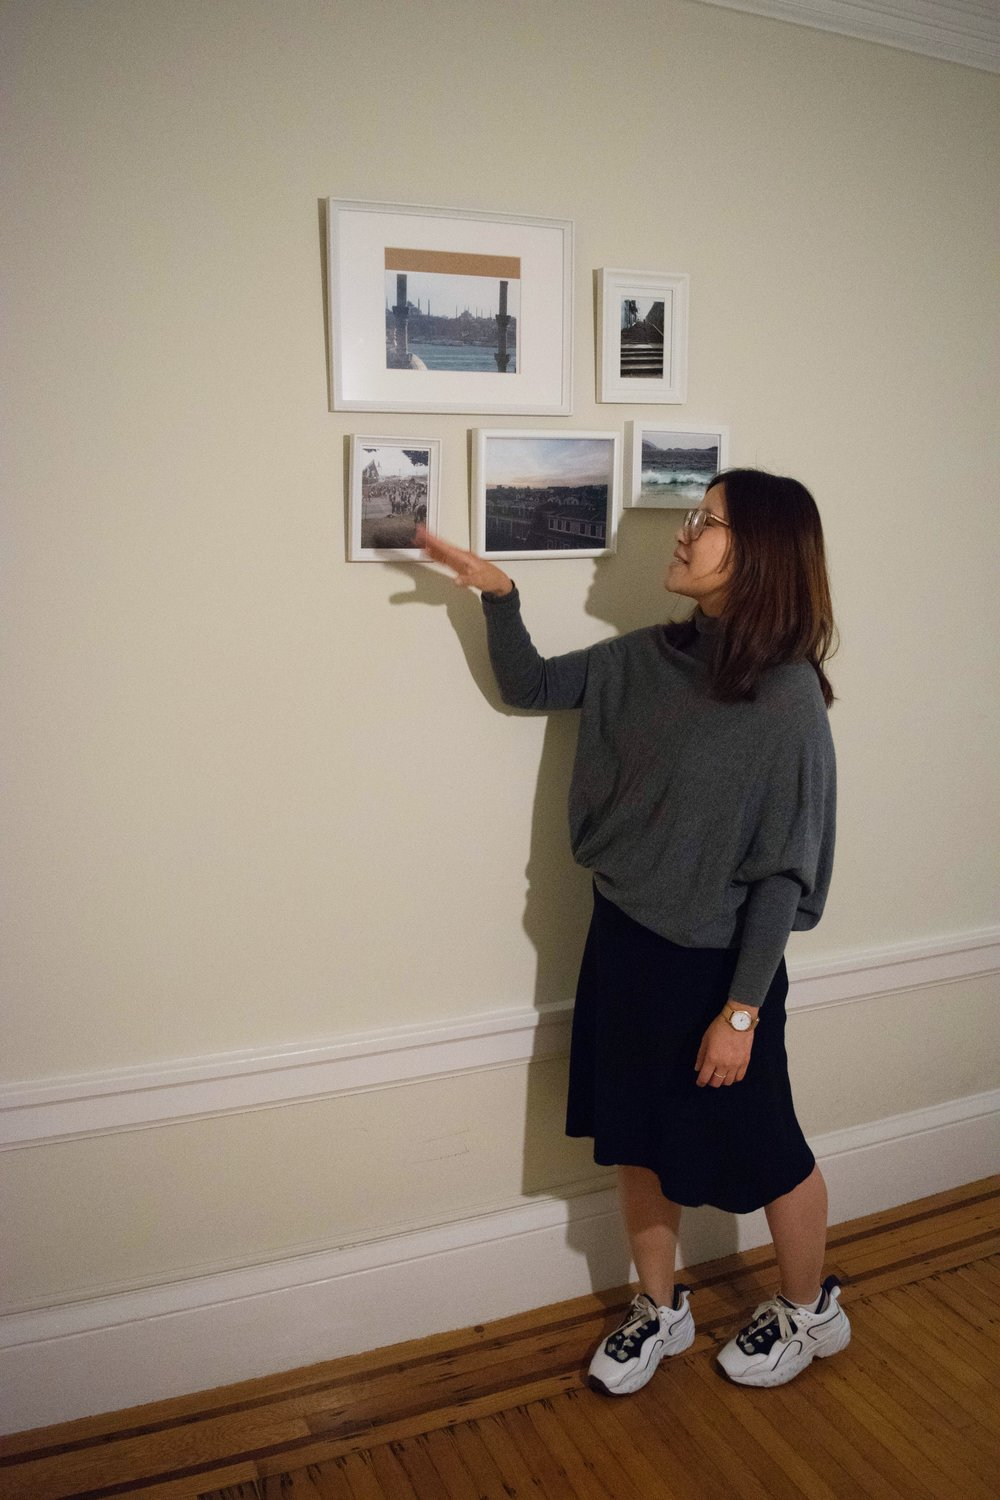 Jena shows some photos of favorite German cities and the cities where she launched Uber. She wears a  Libertine–Libertine  skirt,  Acne Studios  top, and  Acne Studios Manhattan sneakers .